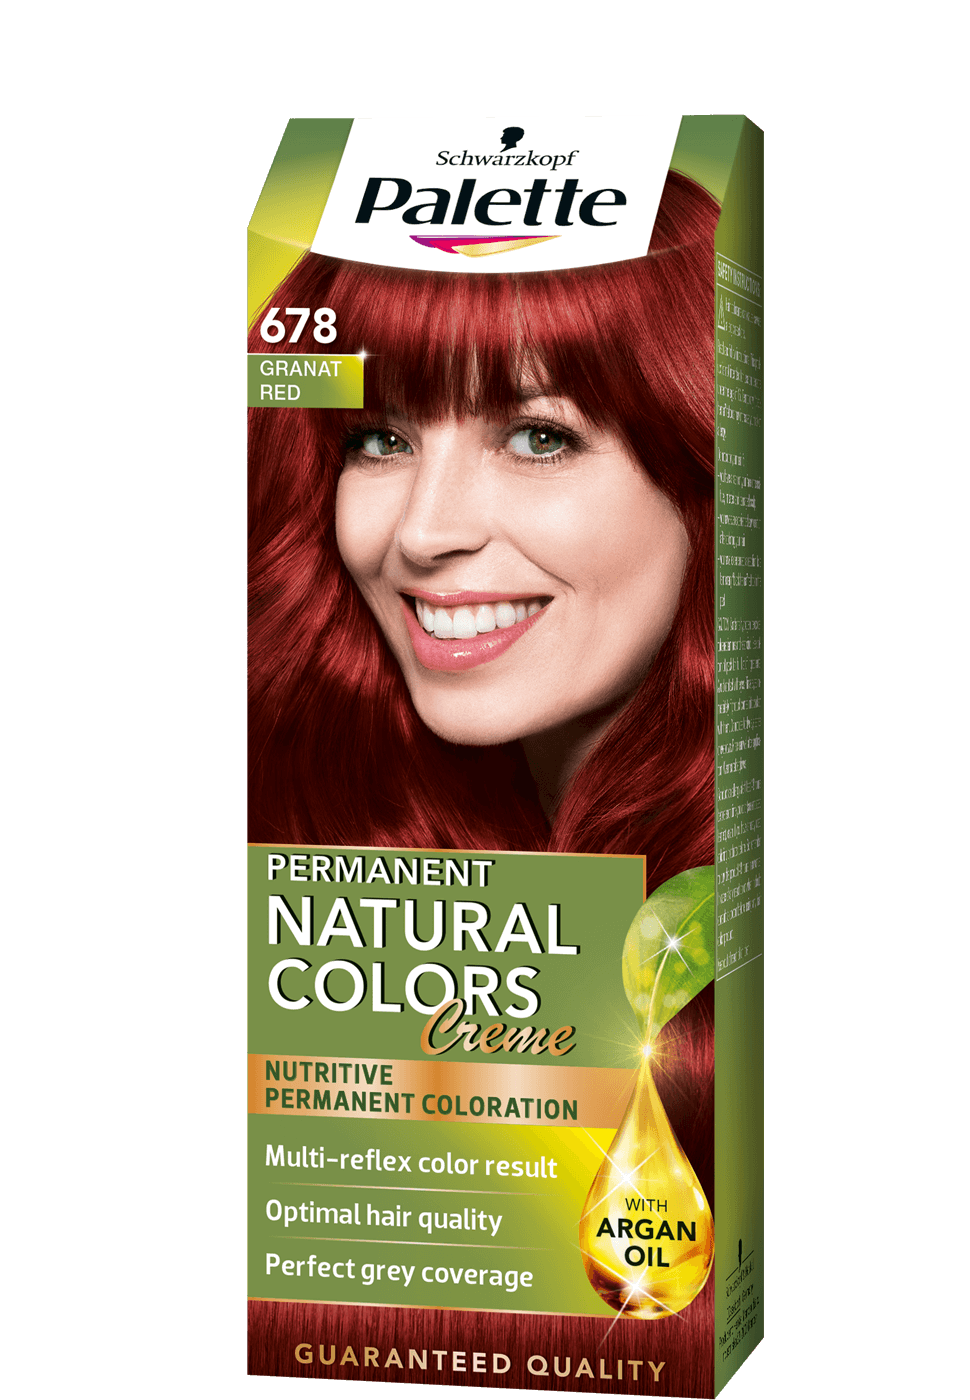 Permanent Natural Colors 678 - Gránát vörös